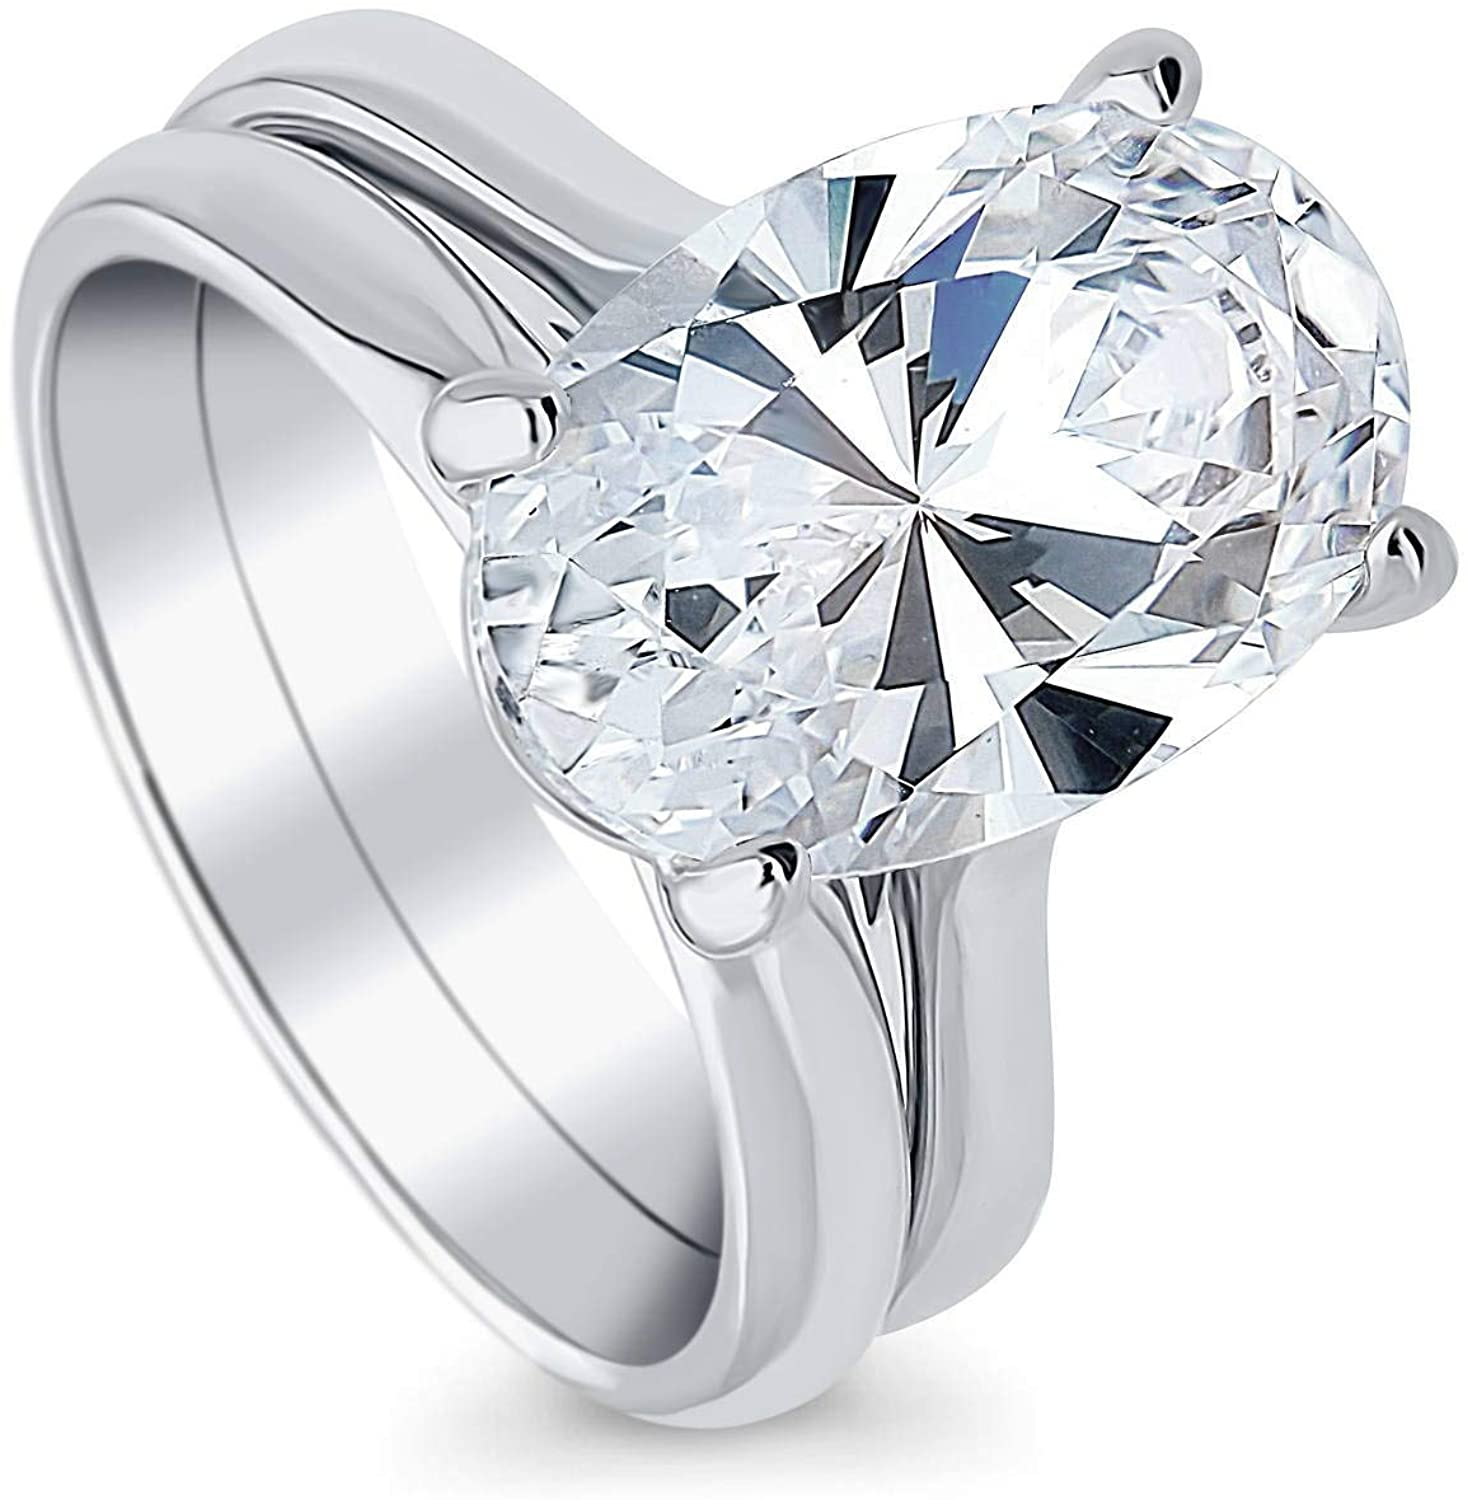 BERRICLE Rhodium Plated Sterling Silver Oval Cut Cubic Zirconia CZ Solitaire Engagement Wedding Ring Set 5.5 CTW